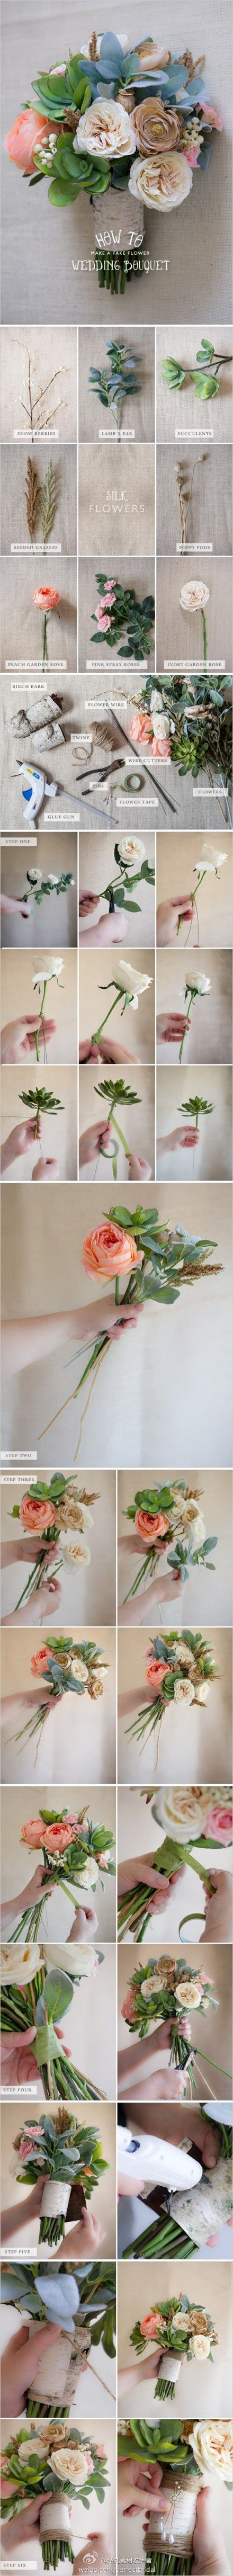 How to make own wedding bouquet, Cool Flower Crafts , Paper Crafts for Teens , paper, craft, flower,wrap, gift, decor,blumen,basteln,bastelvorlage,tutorial diy, spring kids crafts, paper flowers, handmade wedding bouquet